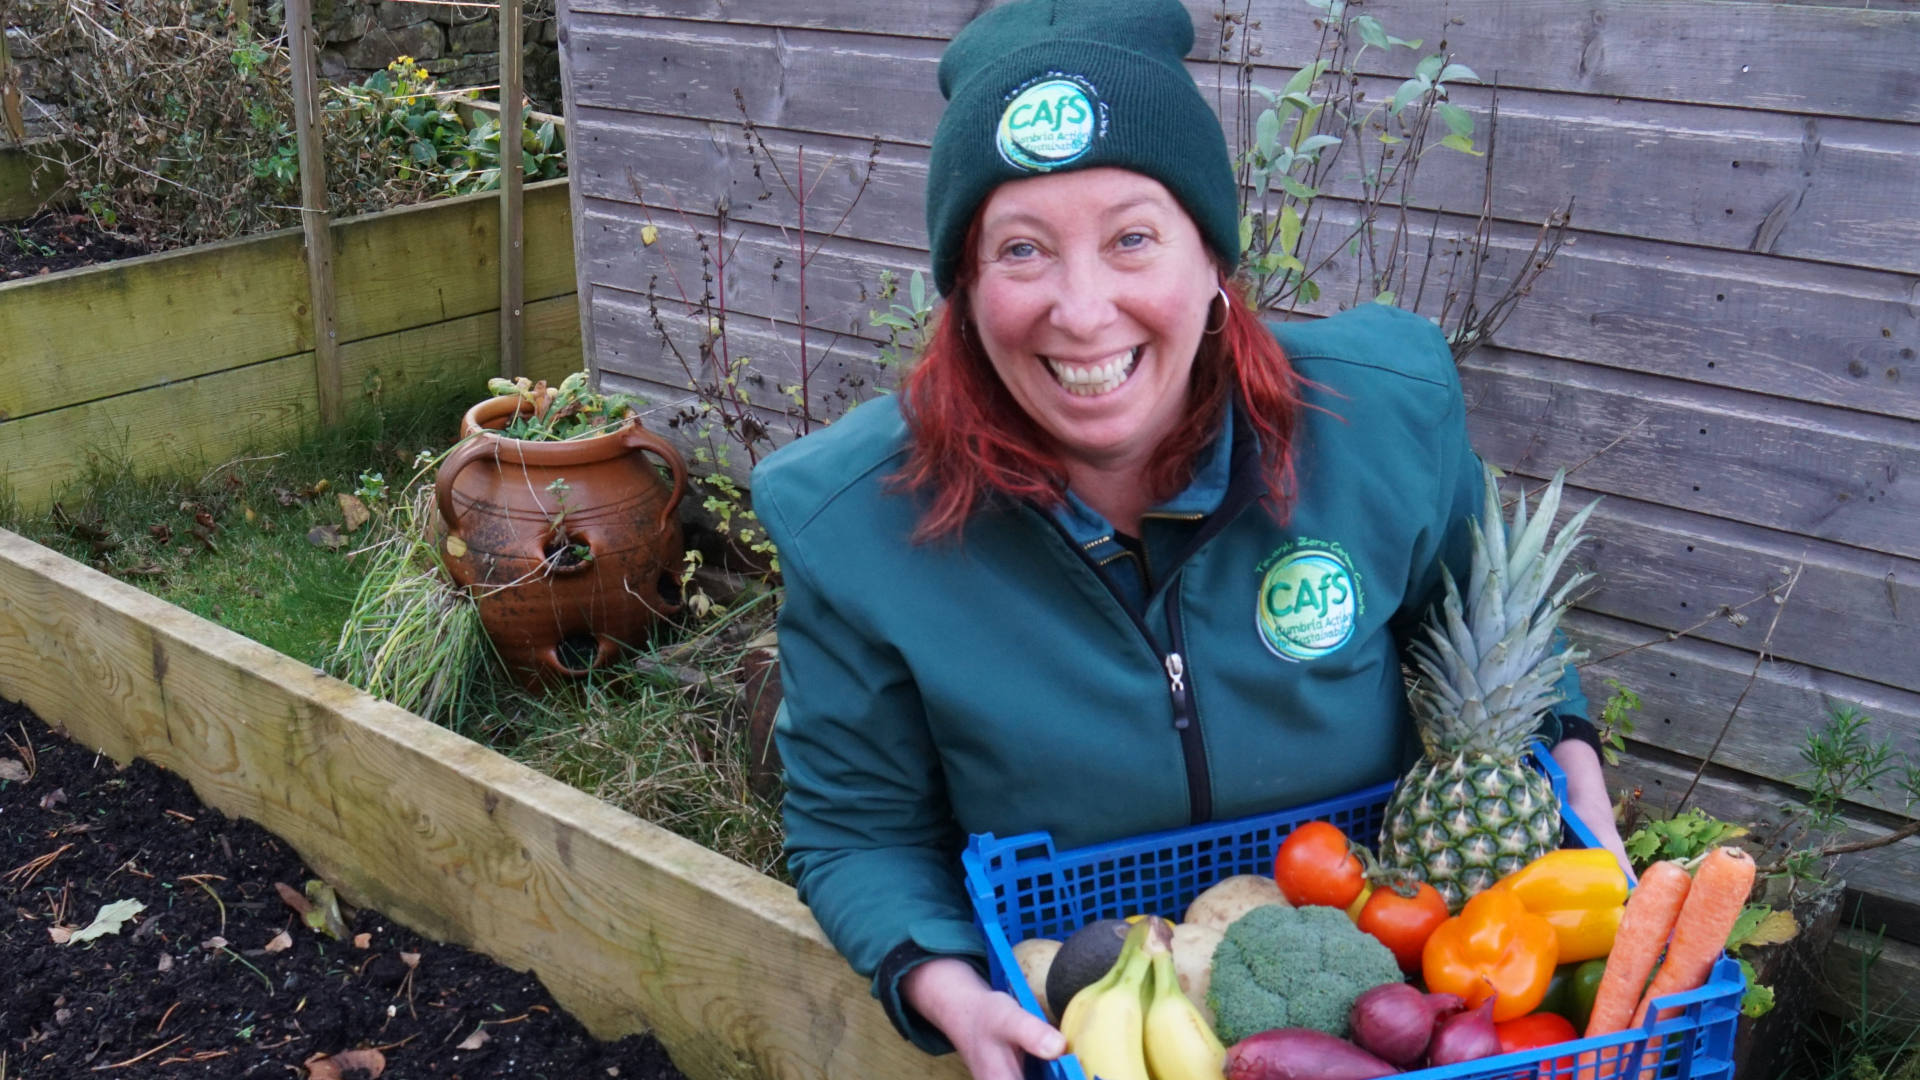 Roe Baker from CAfS by a veg bed, as Alston Moor food-growing study launched